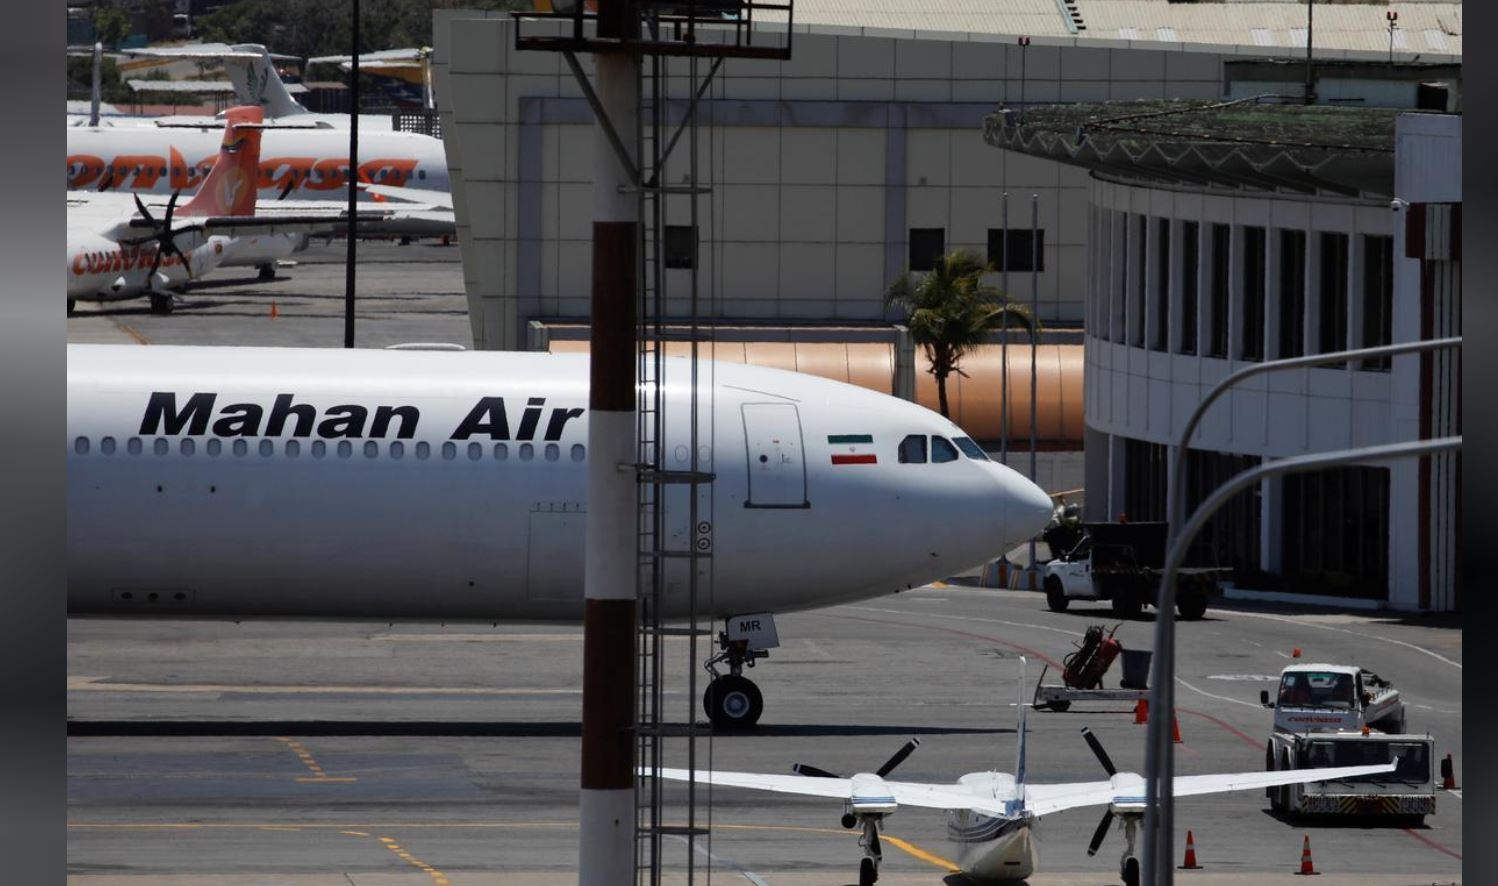 US fighter jets approach Iranian passenger plane